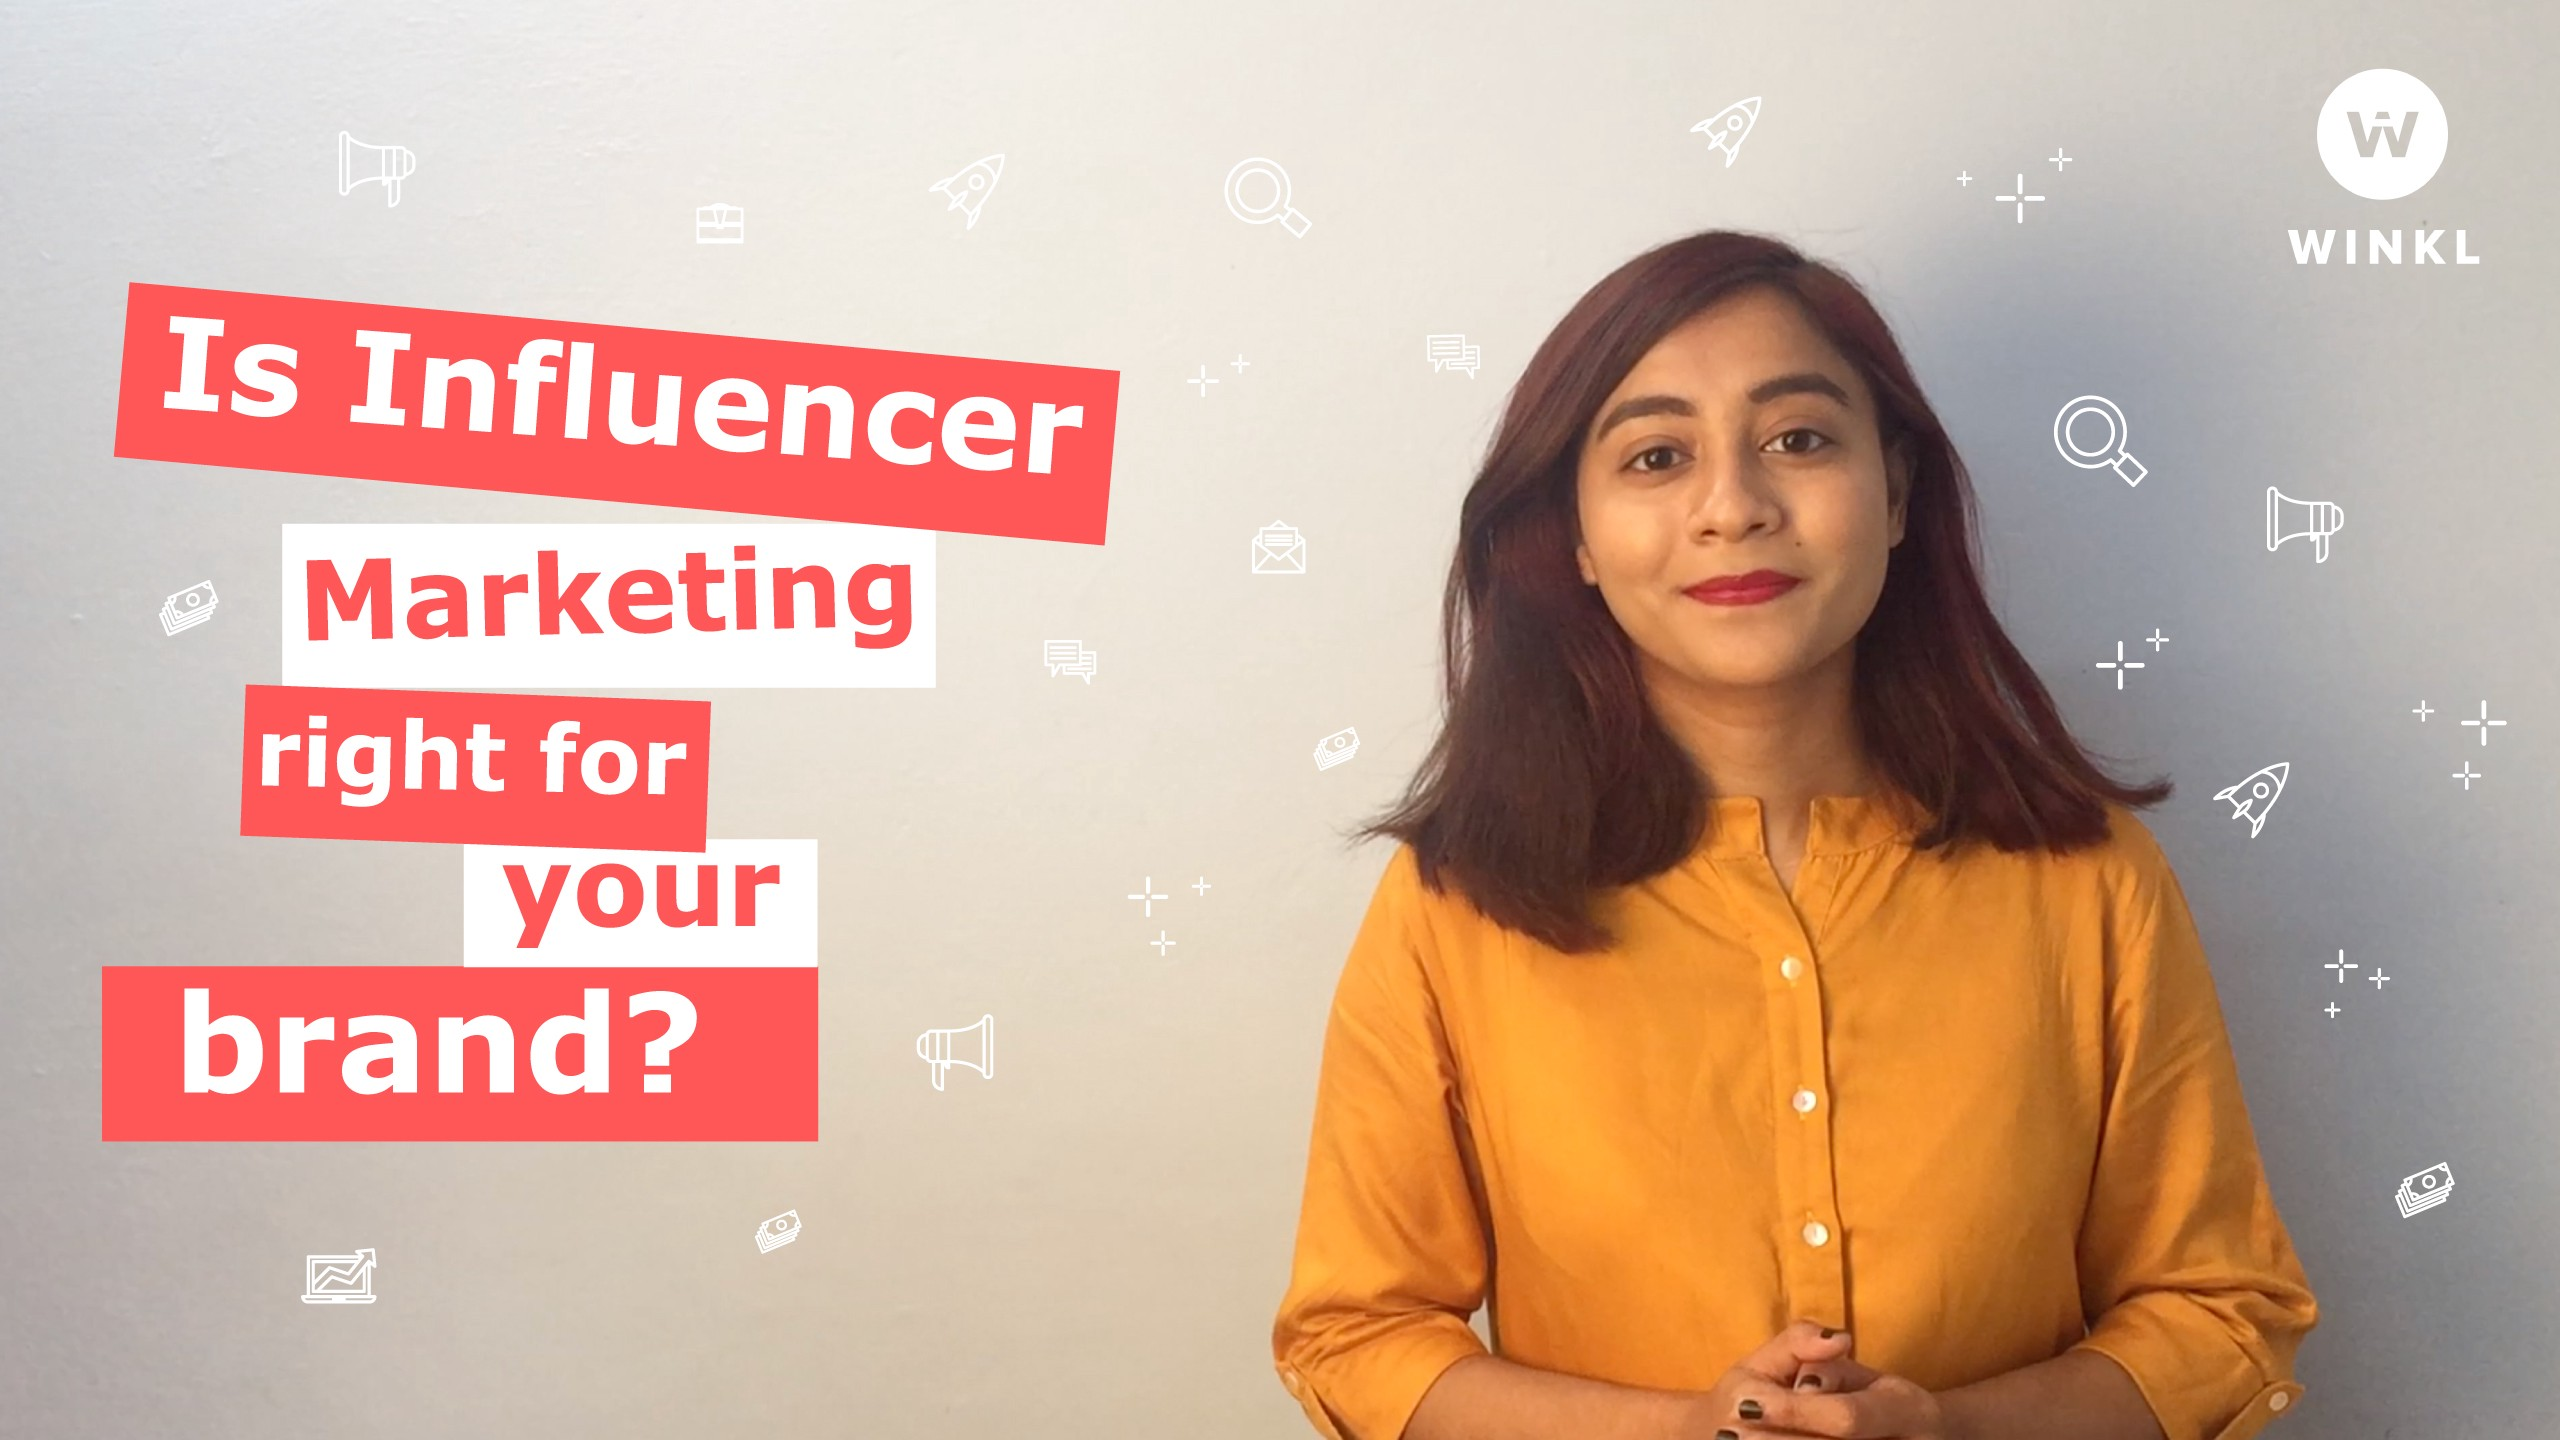 Should you really do influencer marketing for your brand? image